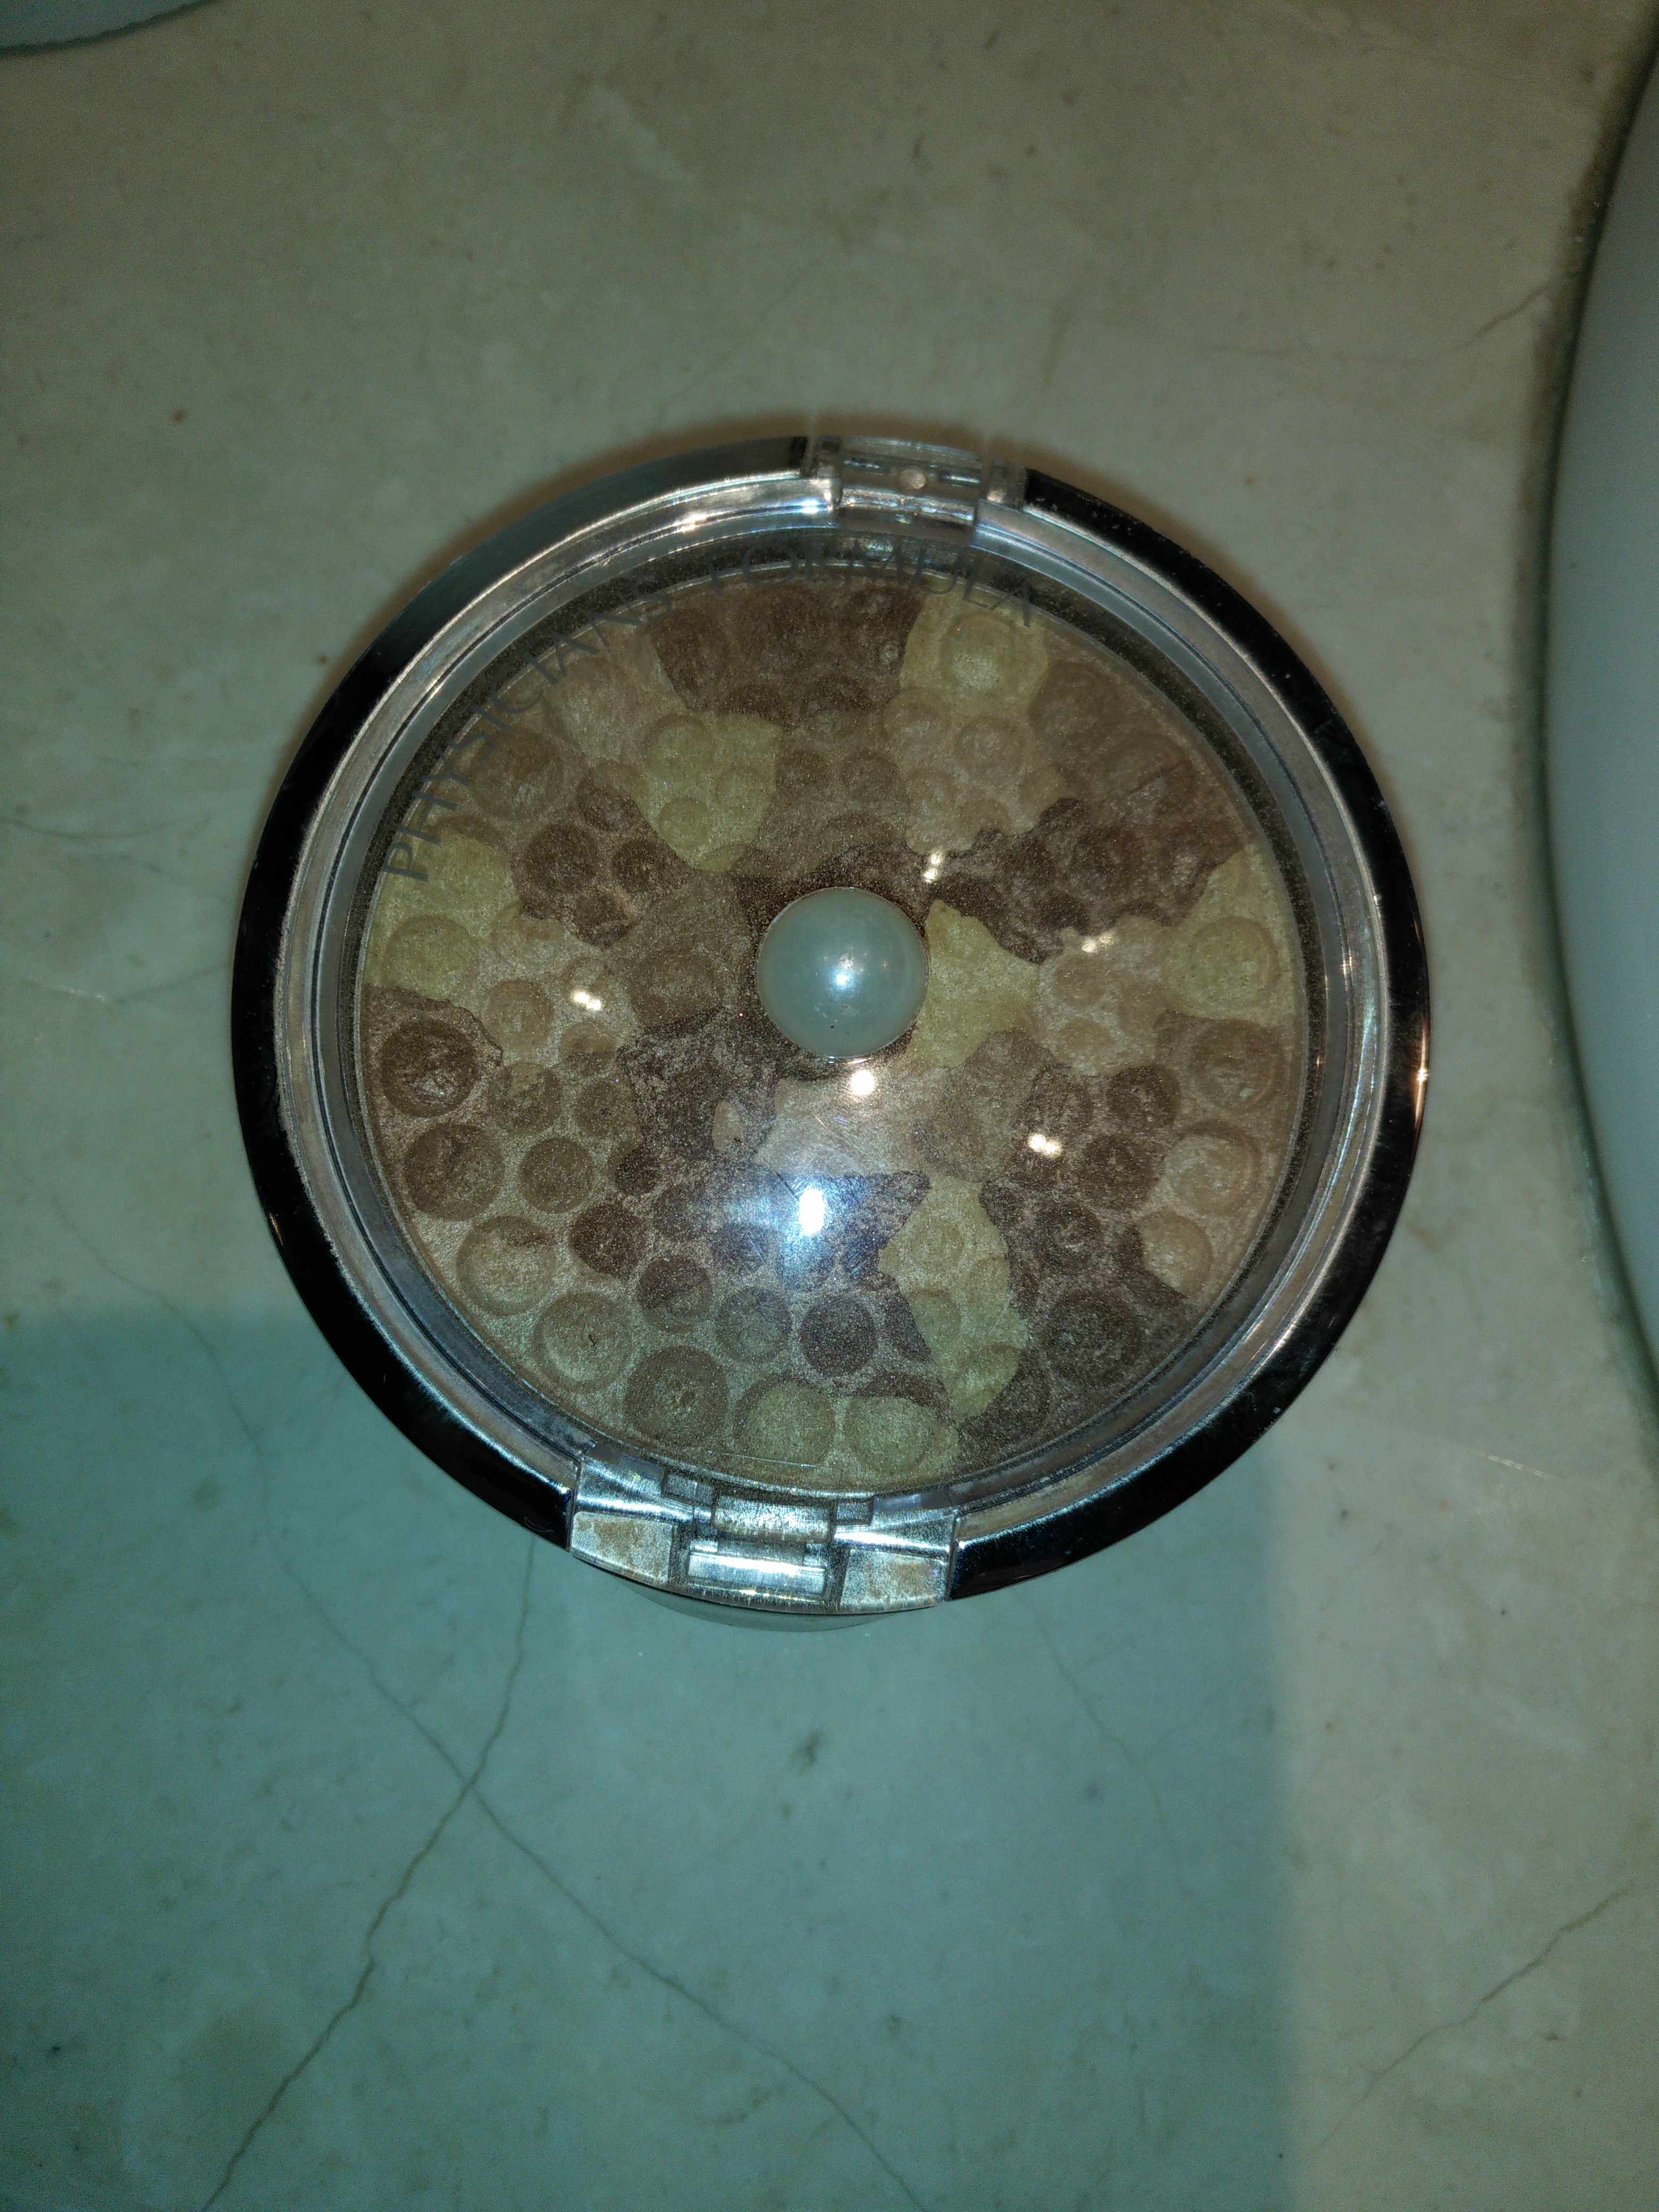 Photo of Physicians Formula Retro Glow Mosaic Bronzer Compact uploaded by Lucie L.